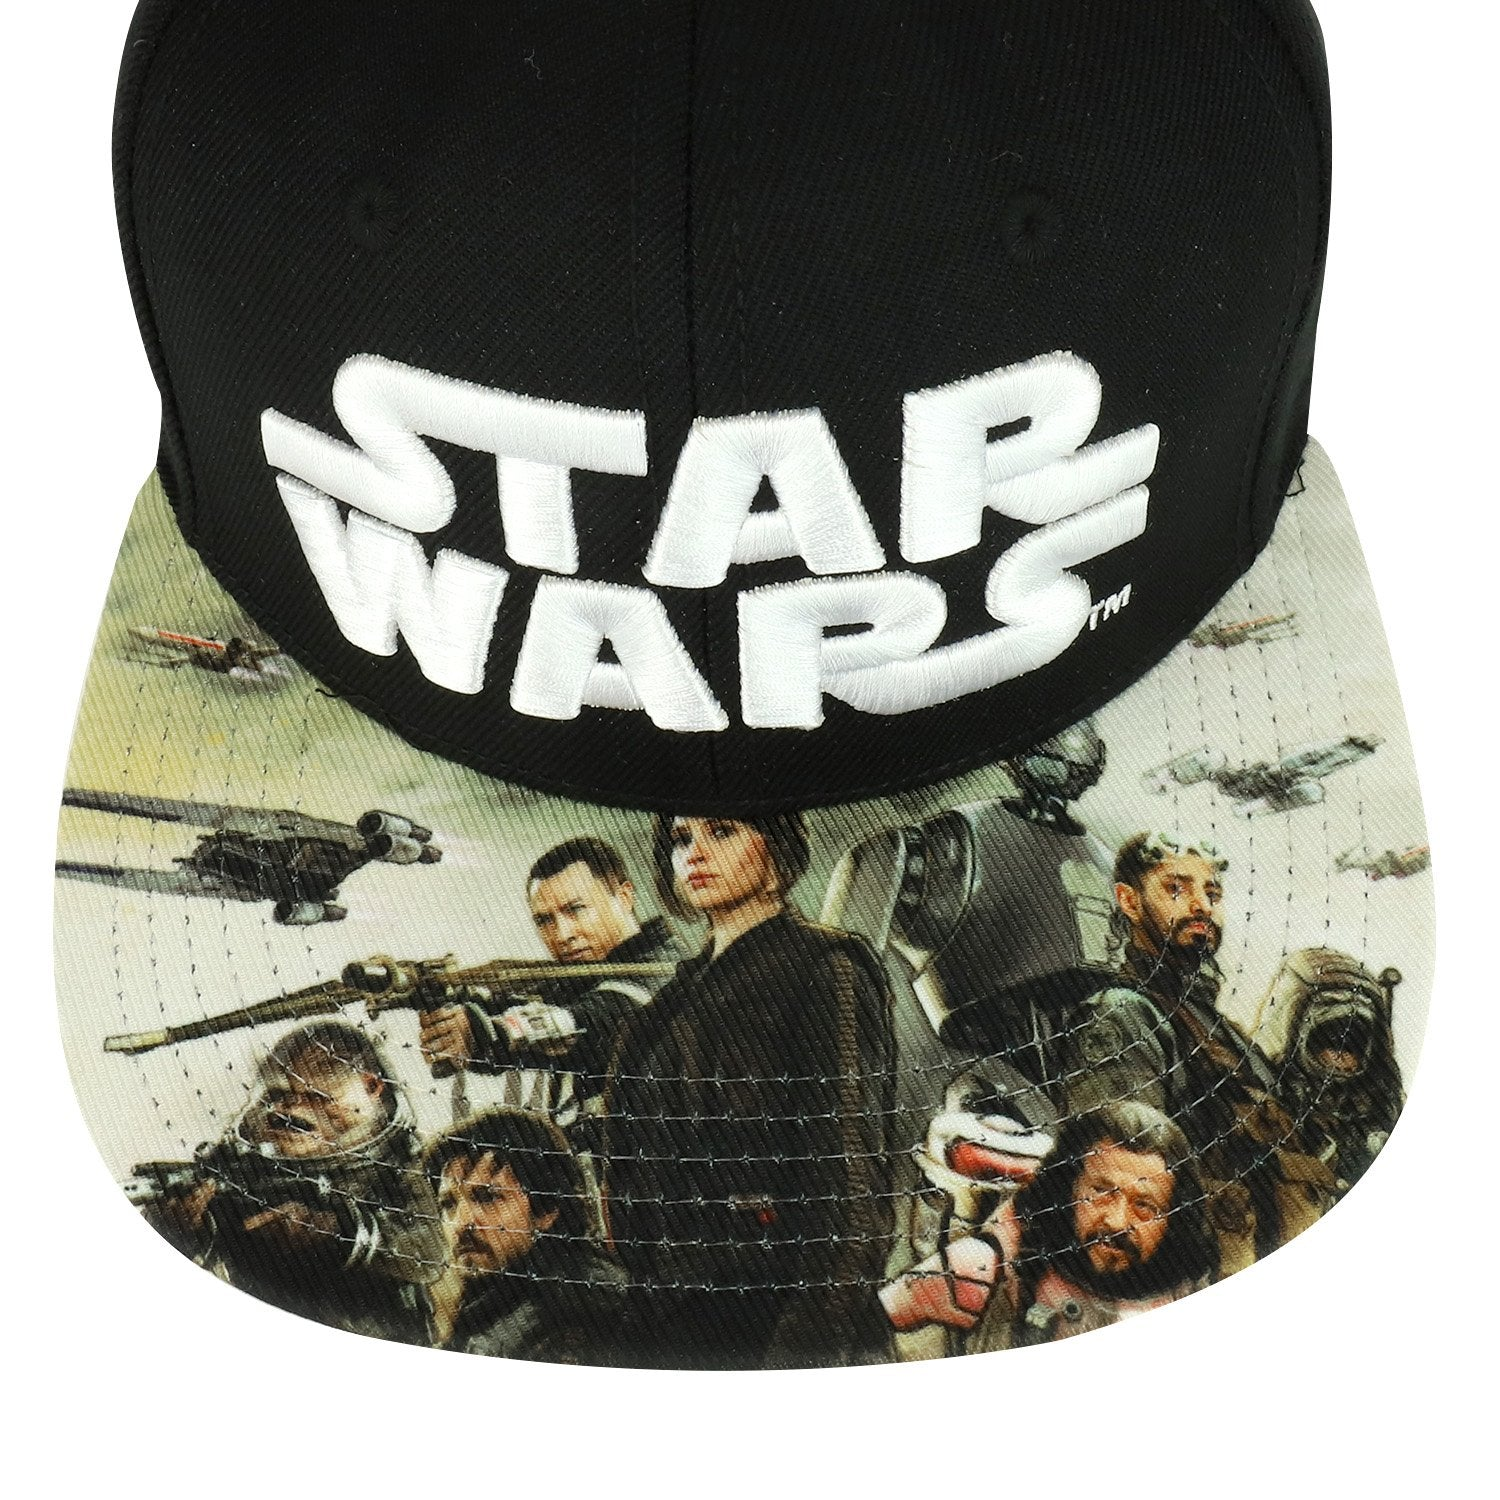 8917385a3e3 Armycrew Star Wars Logo 3D Embroidered Rogue One Sublimated Flat Bill  Snapback Cap